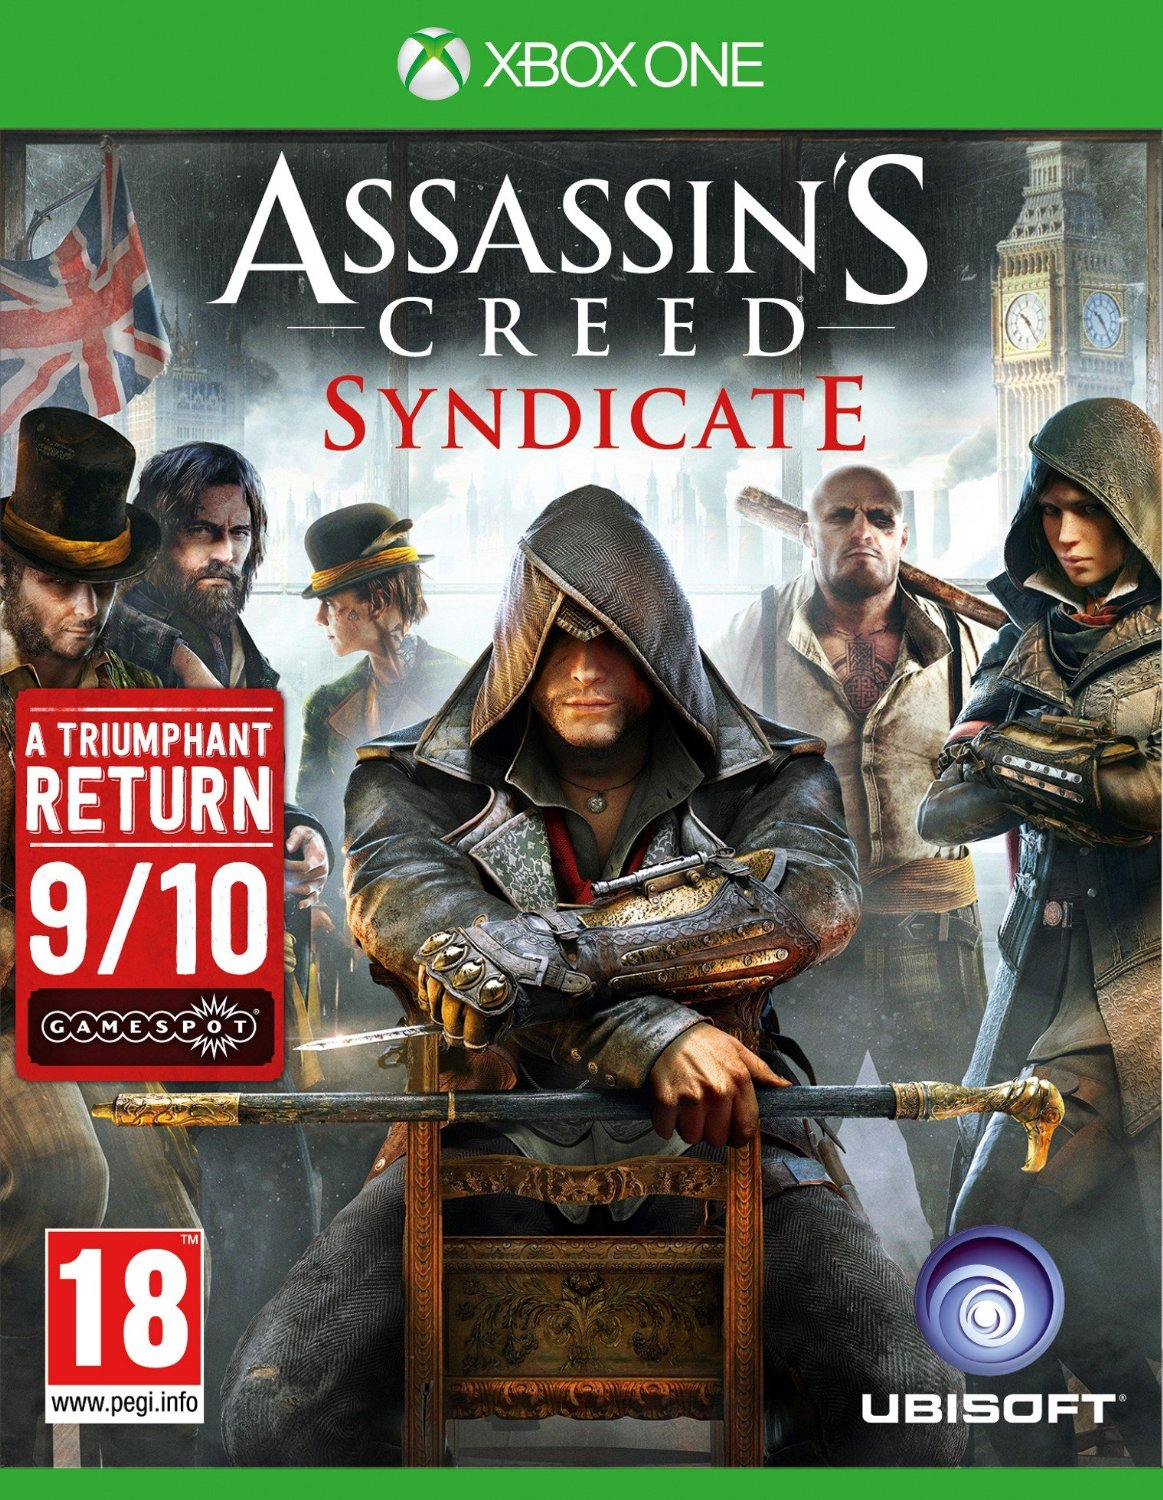 Assassin's Creed: Syndicate-Xbox One                                                                                                                   By:Ubisoft                                            Eur:47.1 Ден:3699